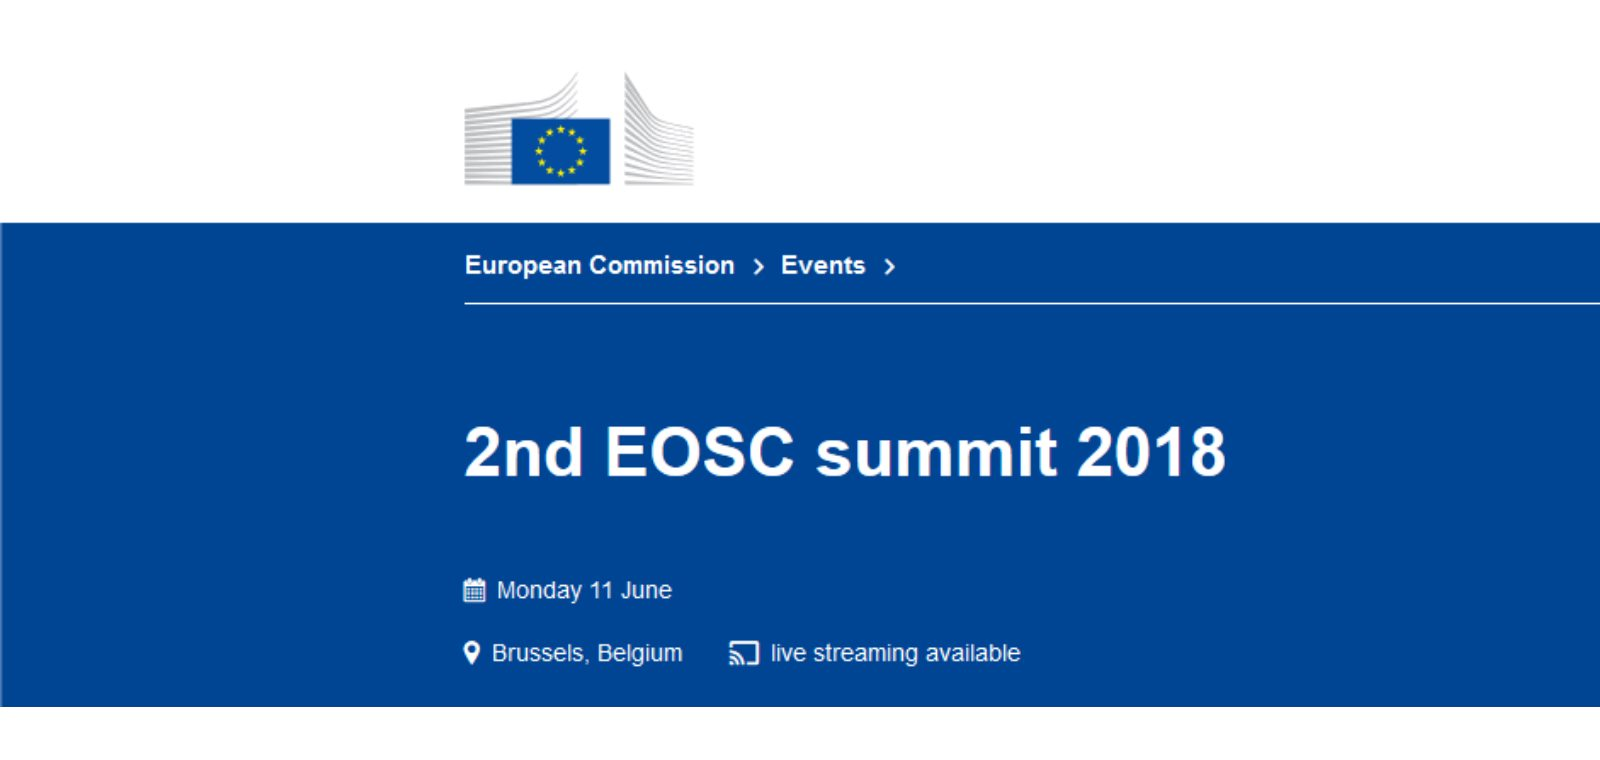 2nd EOSC summit 2018